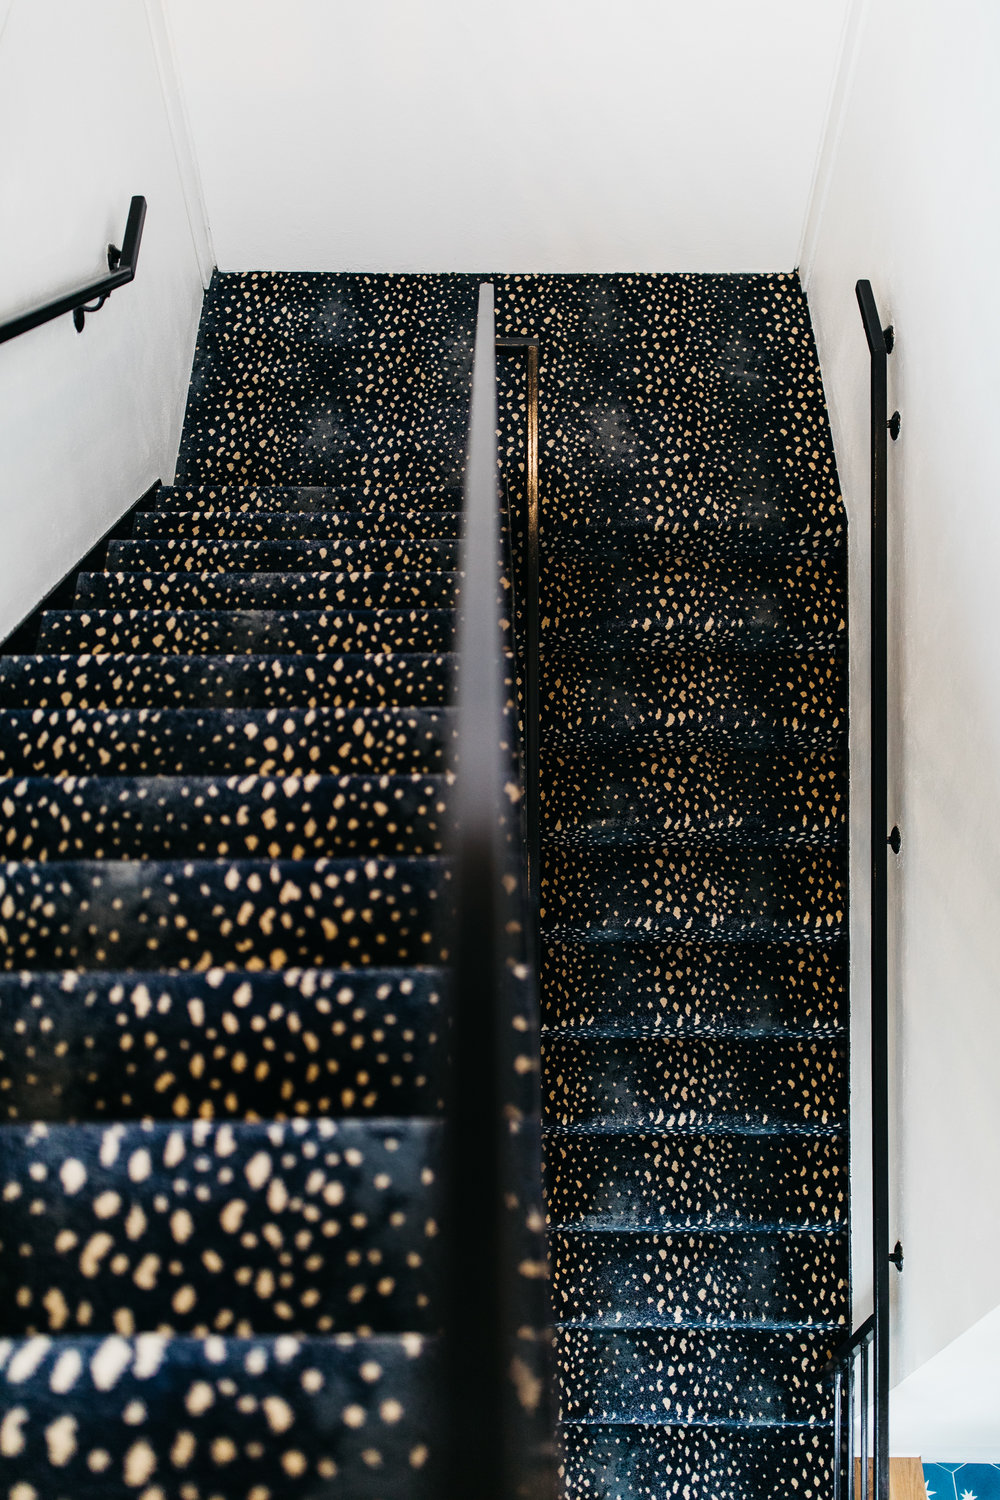 4 - Stark Stars Stairs Constellations Atlanta GA.jpg